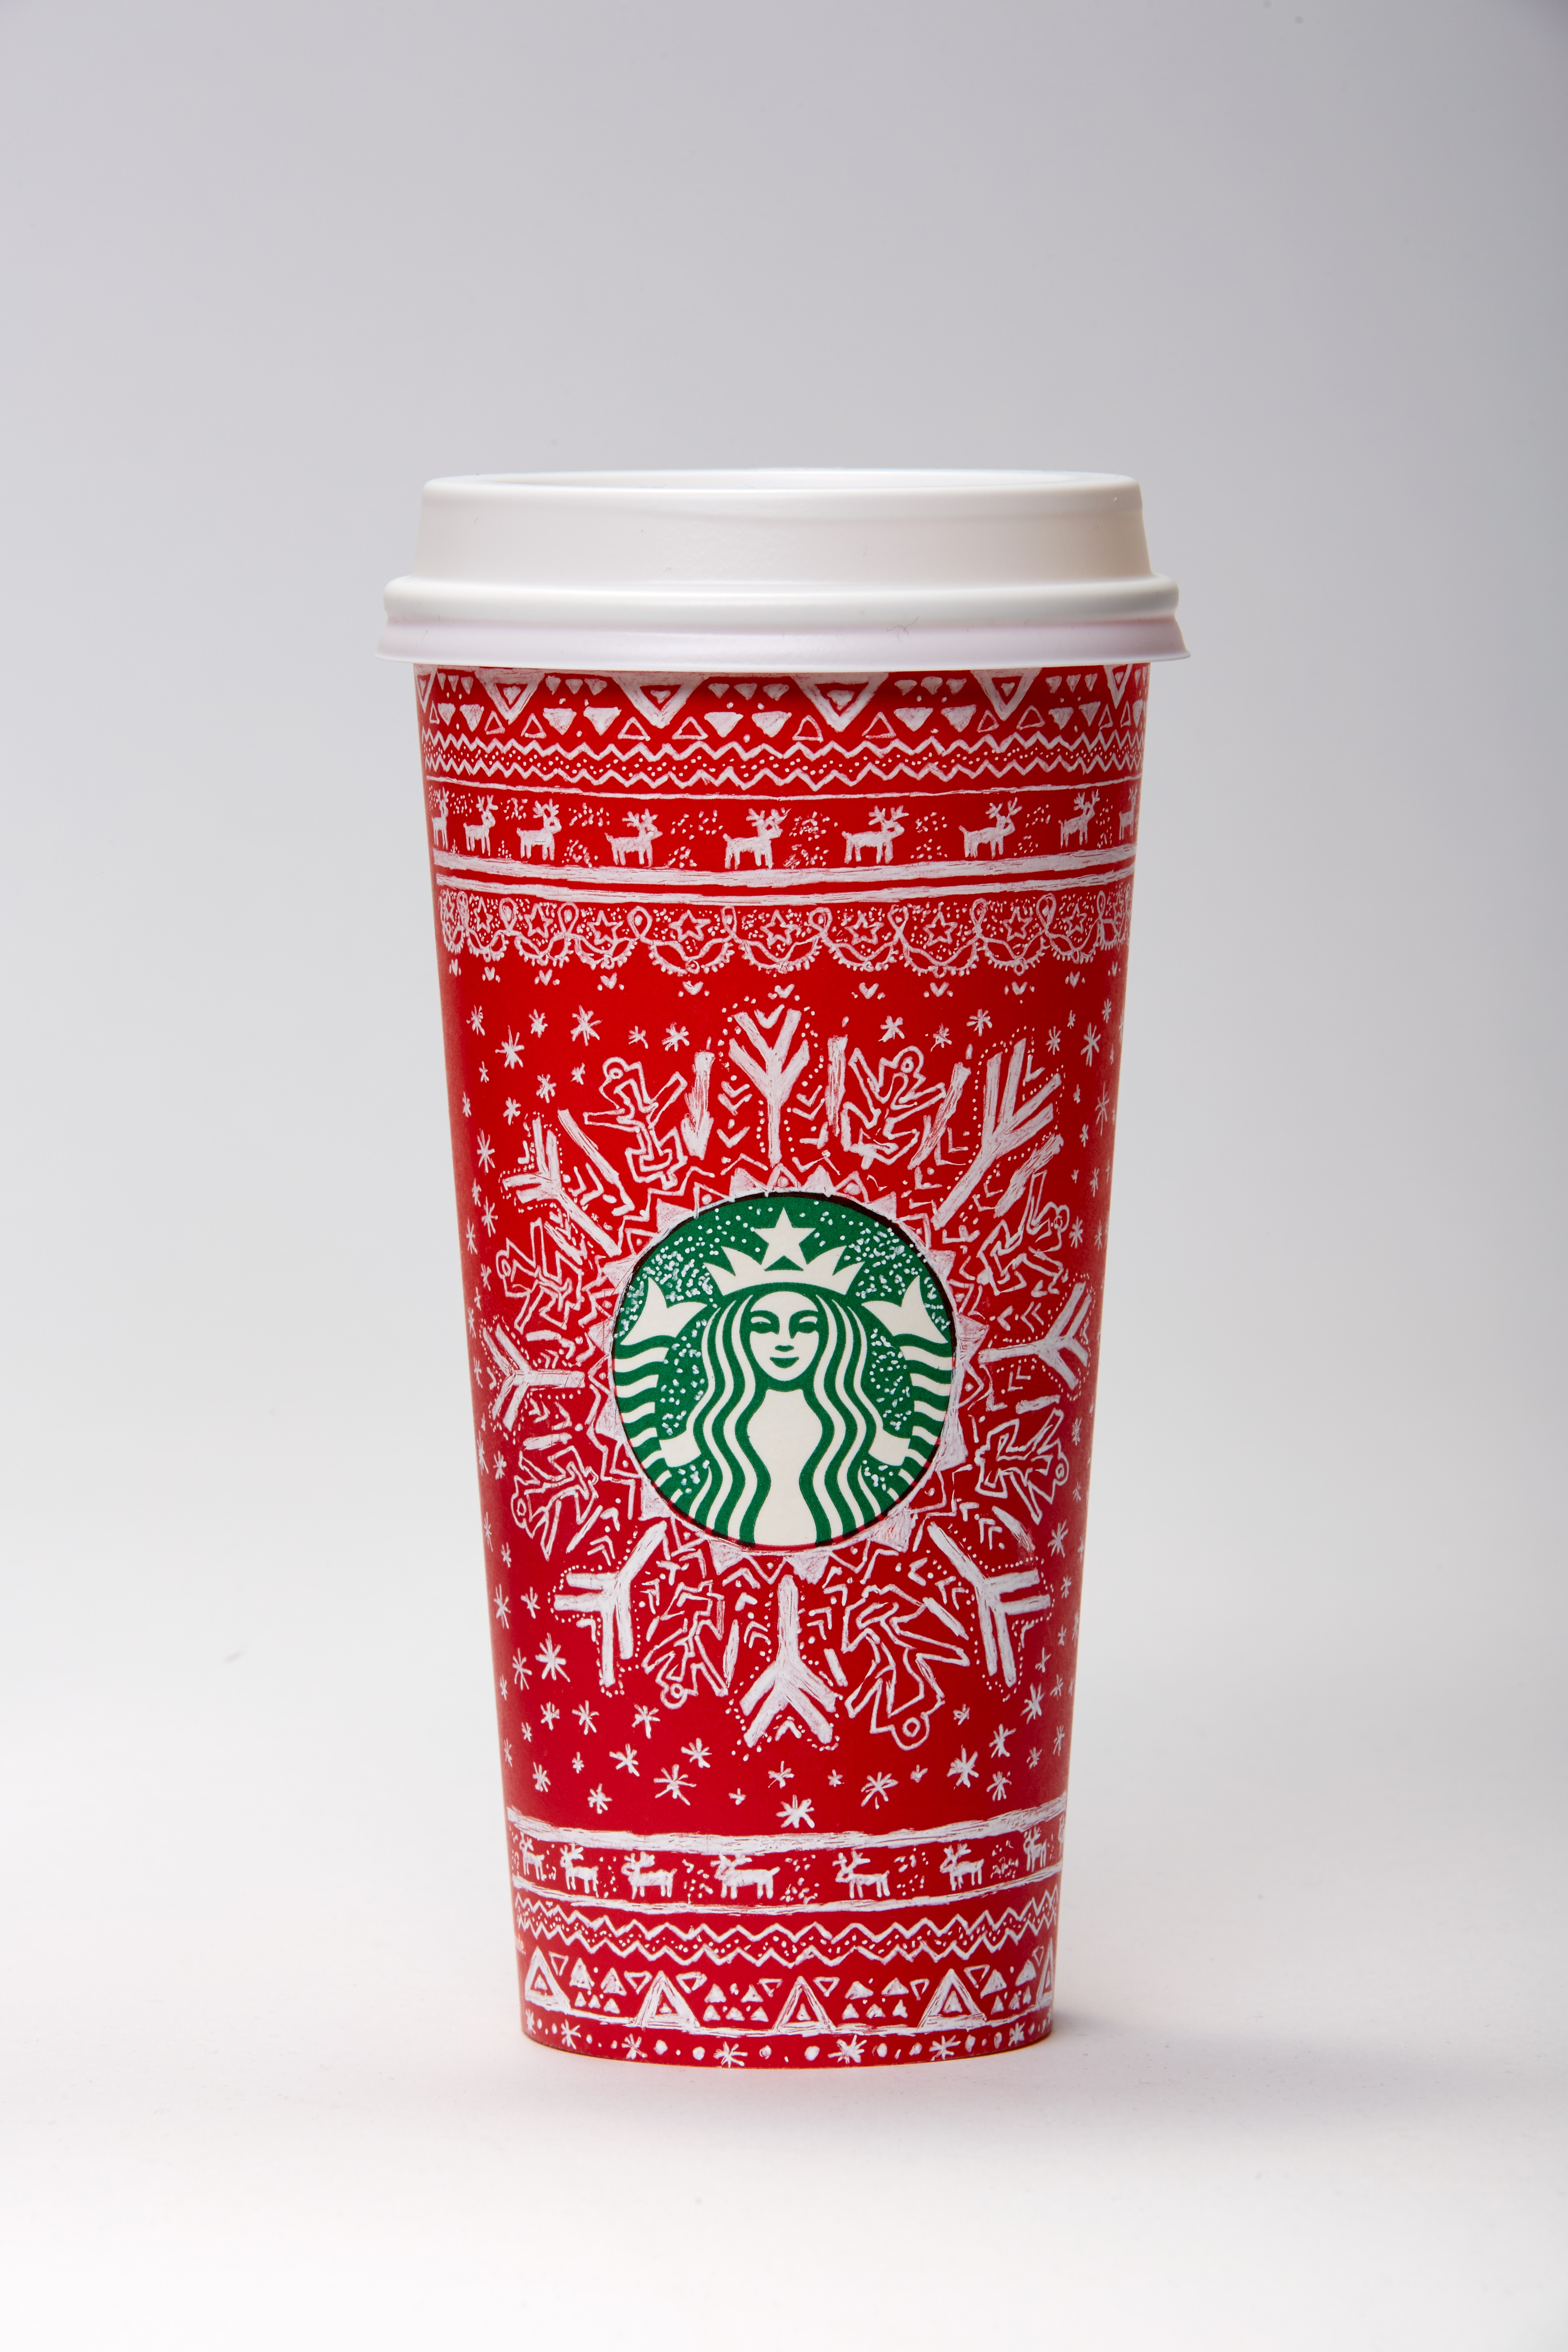 The Starbucks red holiday cup designs are here, and they are gorgeous